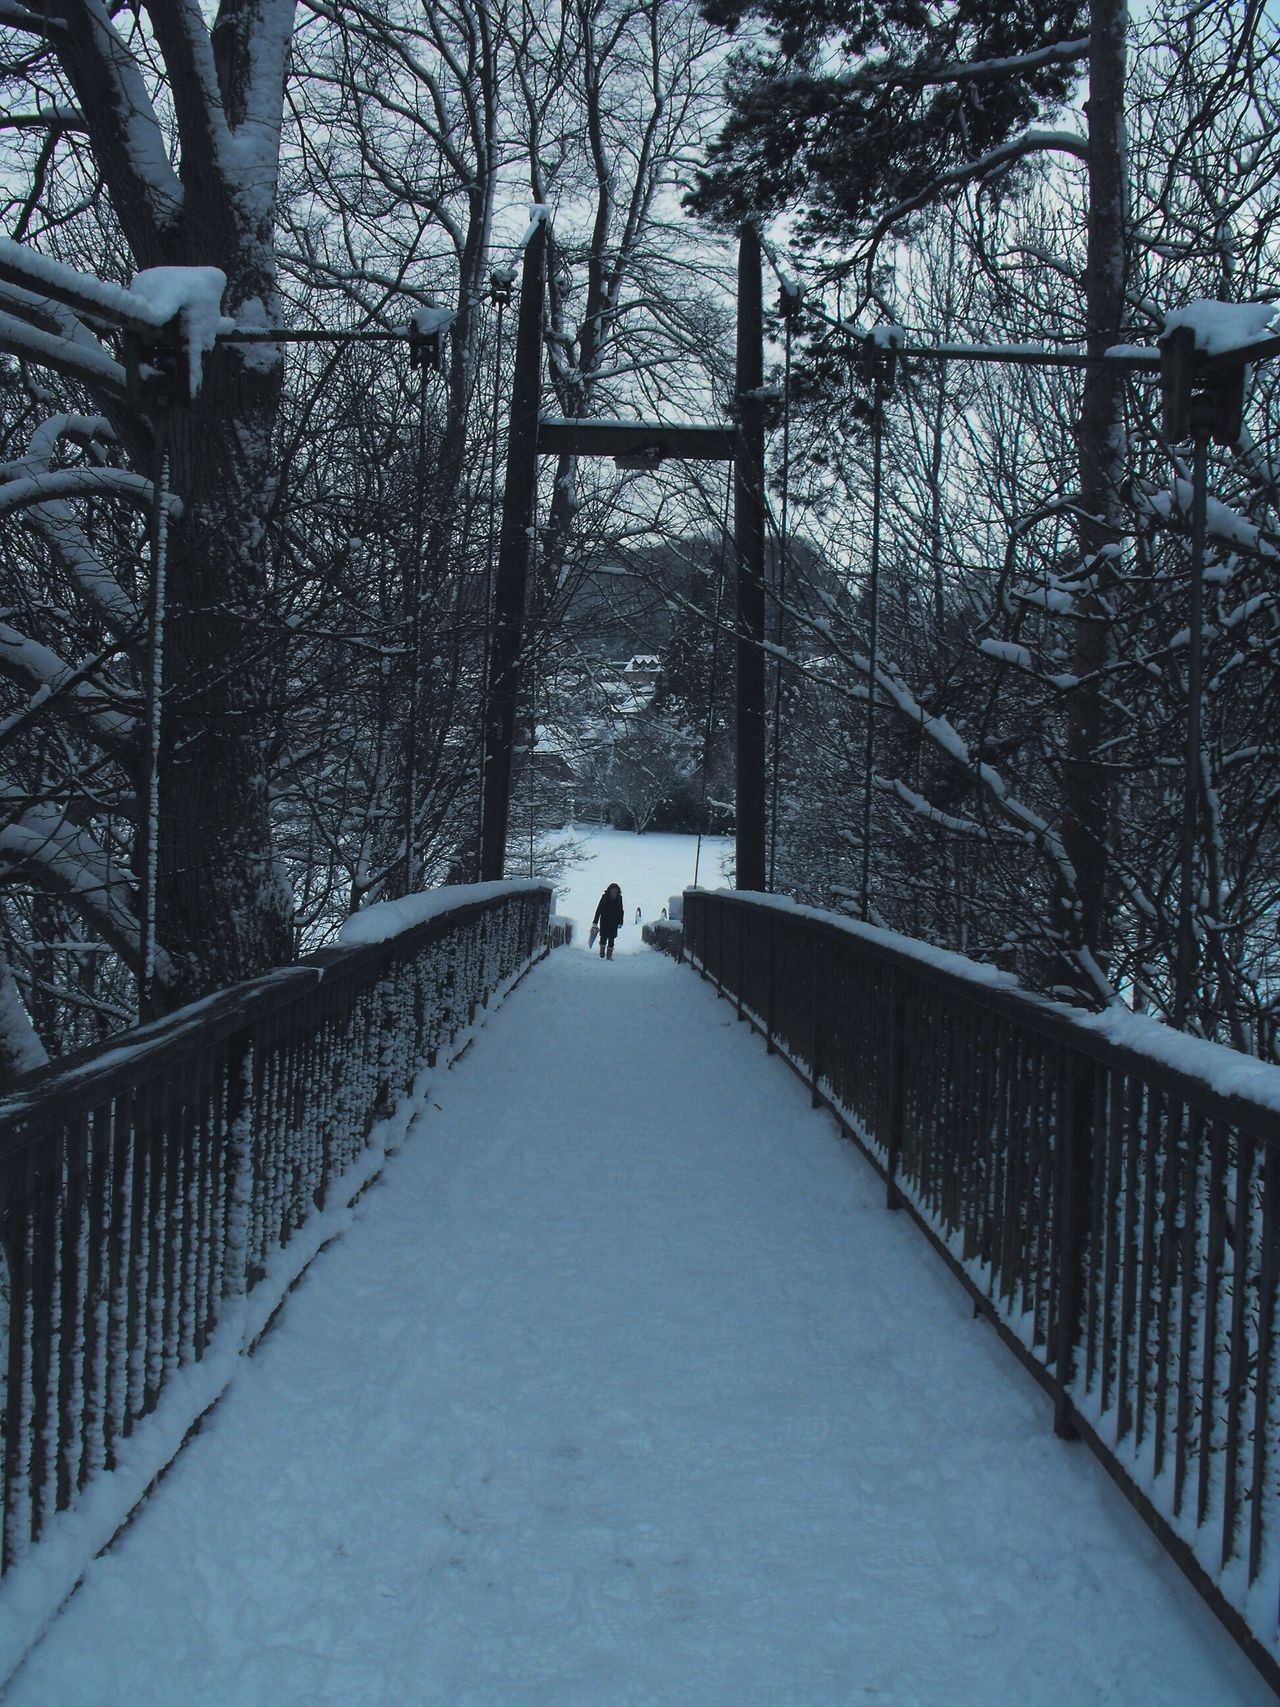 ... from another Winter here in Newtown ... Bridge Newtown Powys Snow Tree Cold Temperature One Person Park Wales Trees Walking снег мост деревья